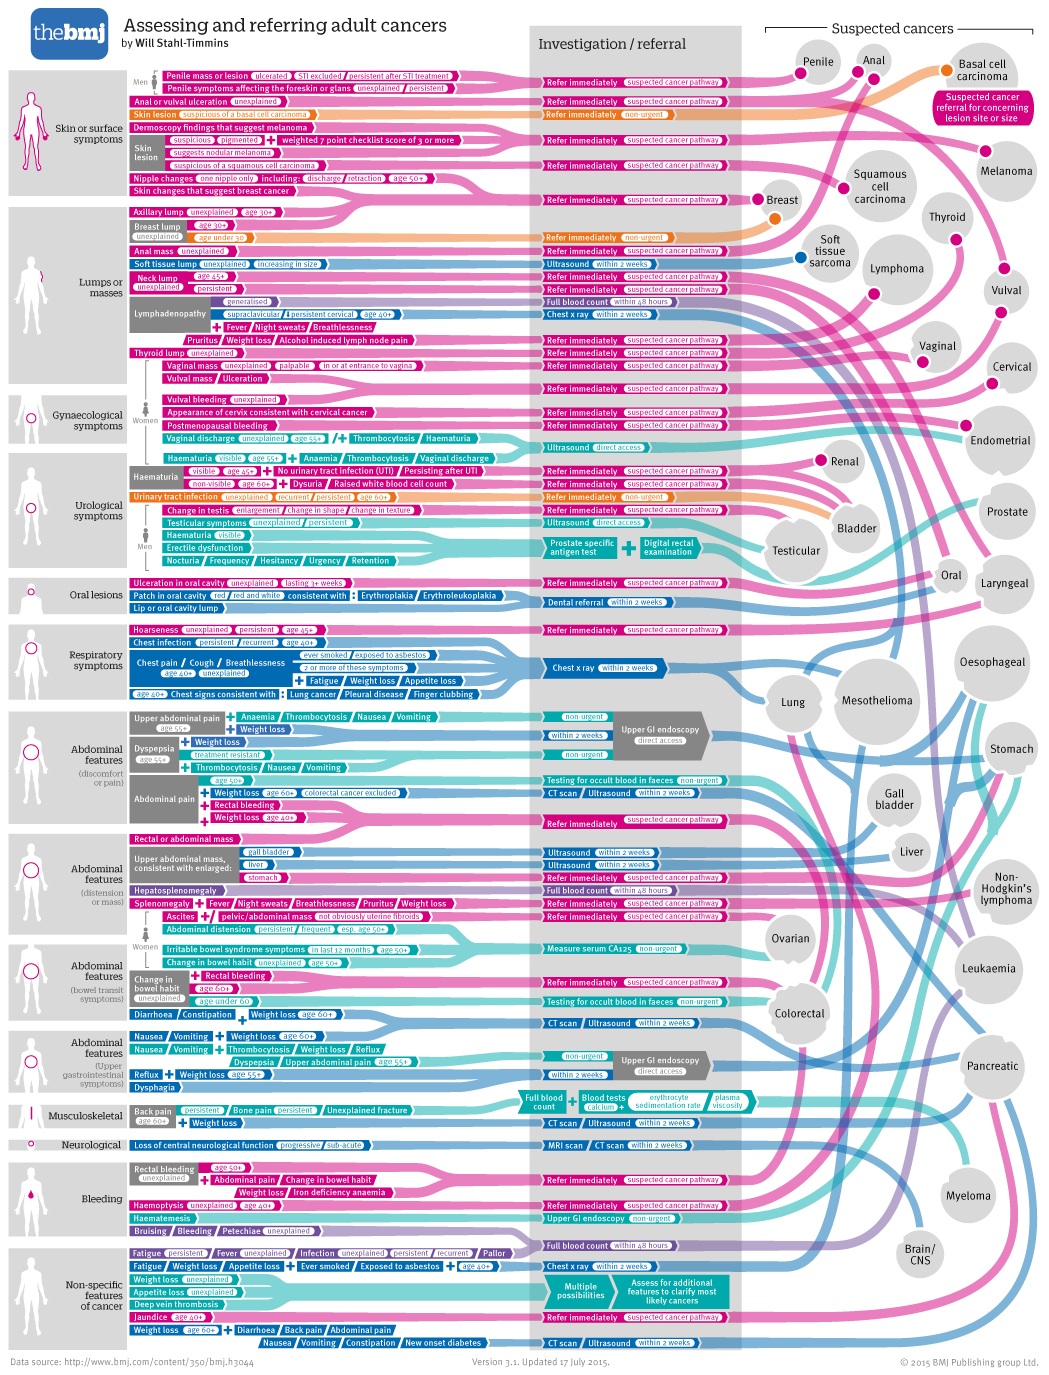 Will Stahl-Timmins: Almost impossible cancer spaghetti - The BMJ